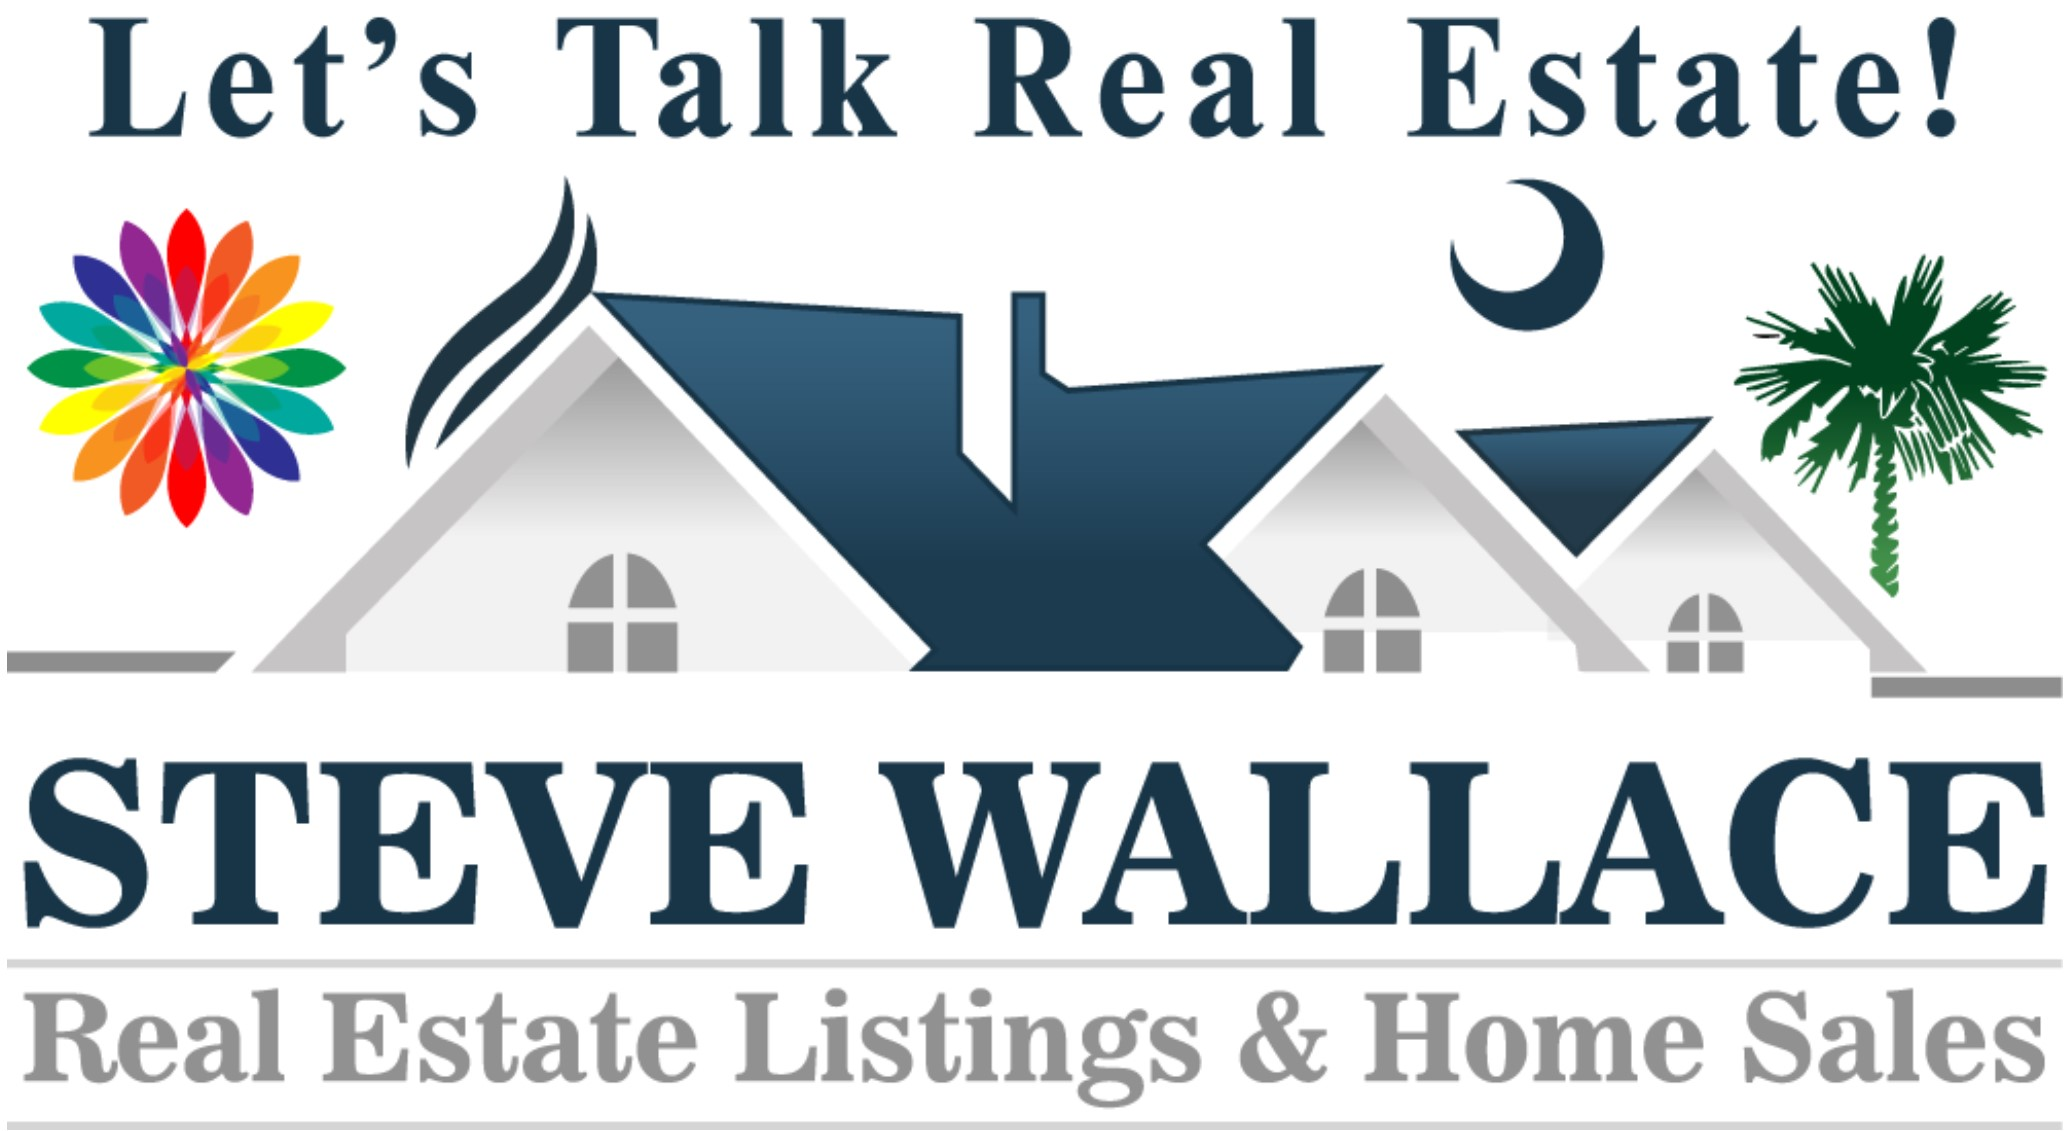 Steve Wallace Real Estate, E-Book, Why My Bluffton SC House Did Not Sell, The First Time